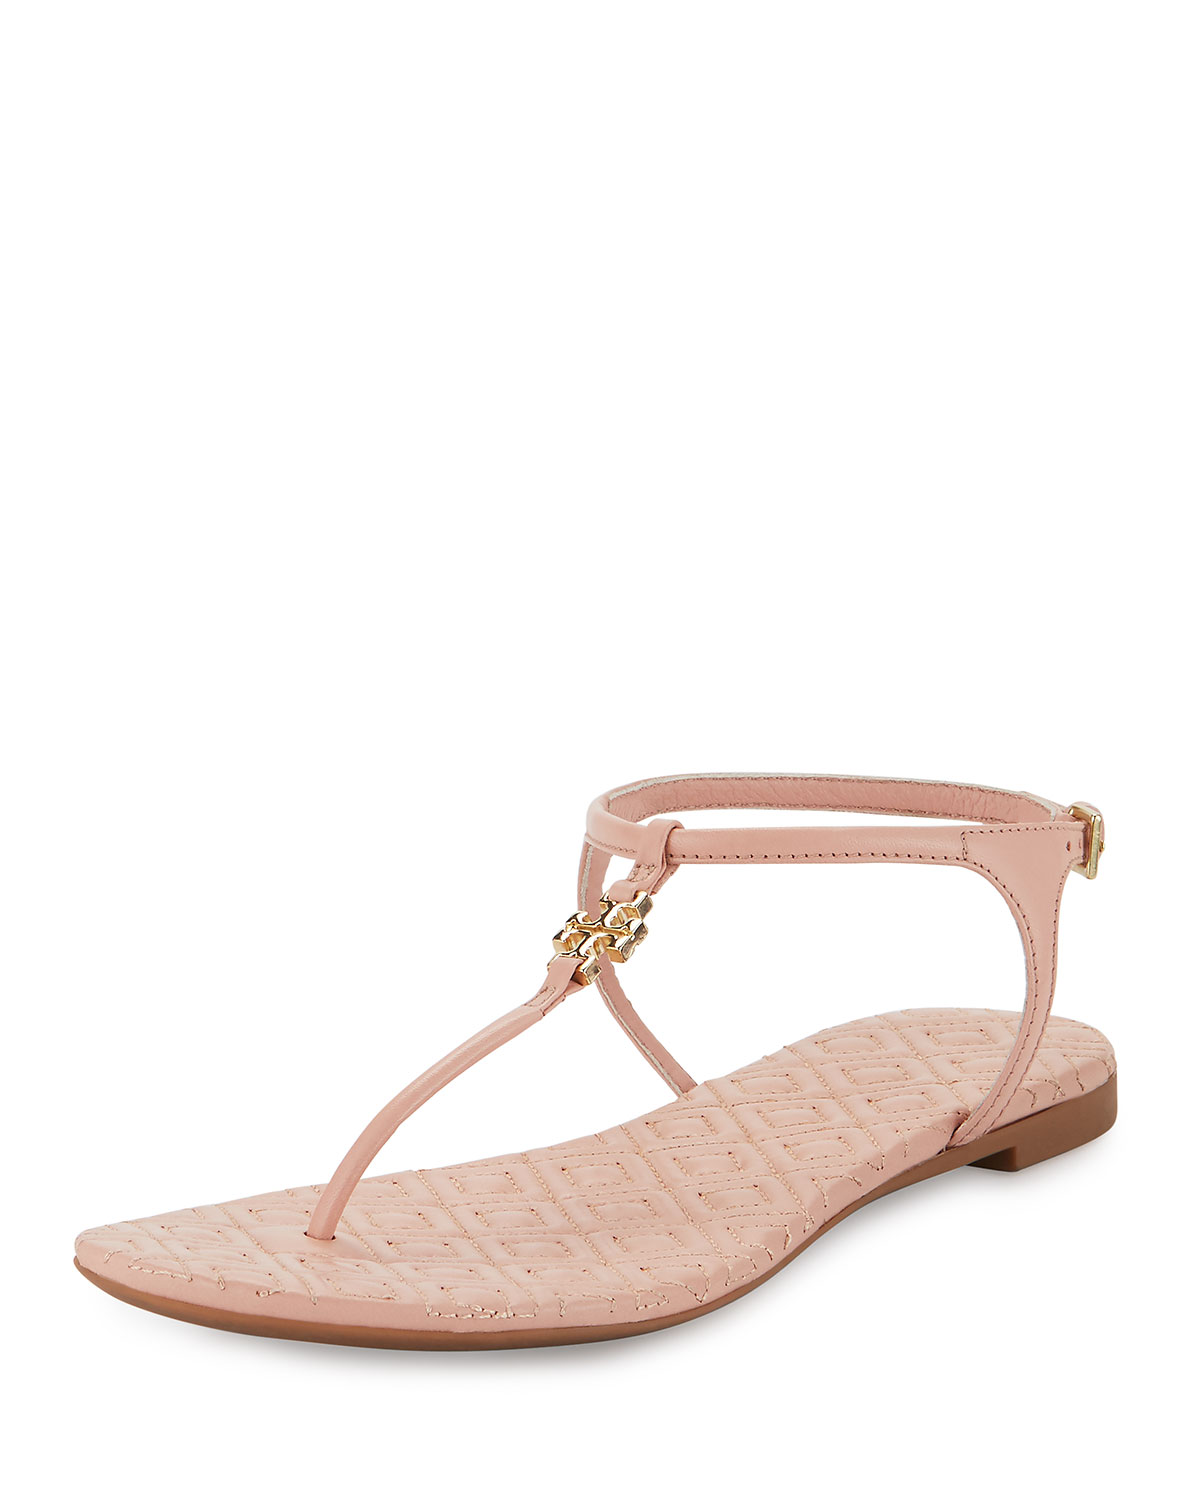 a6b21e32a07e8 Tory Burch. Miller Flat Leather Logo Slide Sandal.  198.00. EARN TRIPLE  POINTS. Next. Sold Out. Marion Quilted T-Strap Sandal